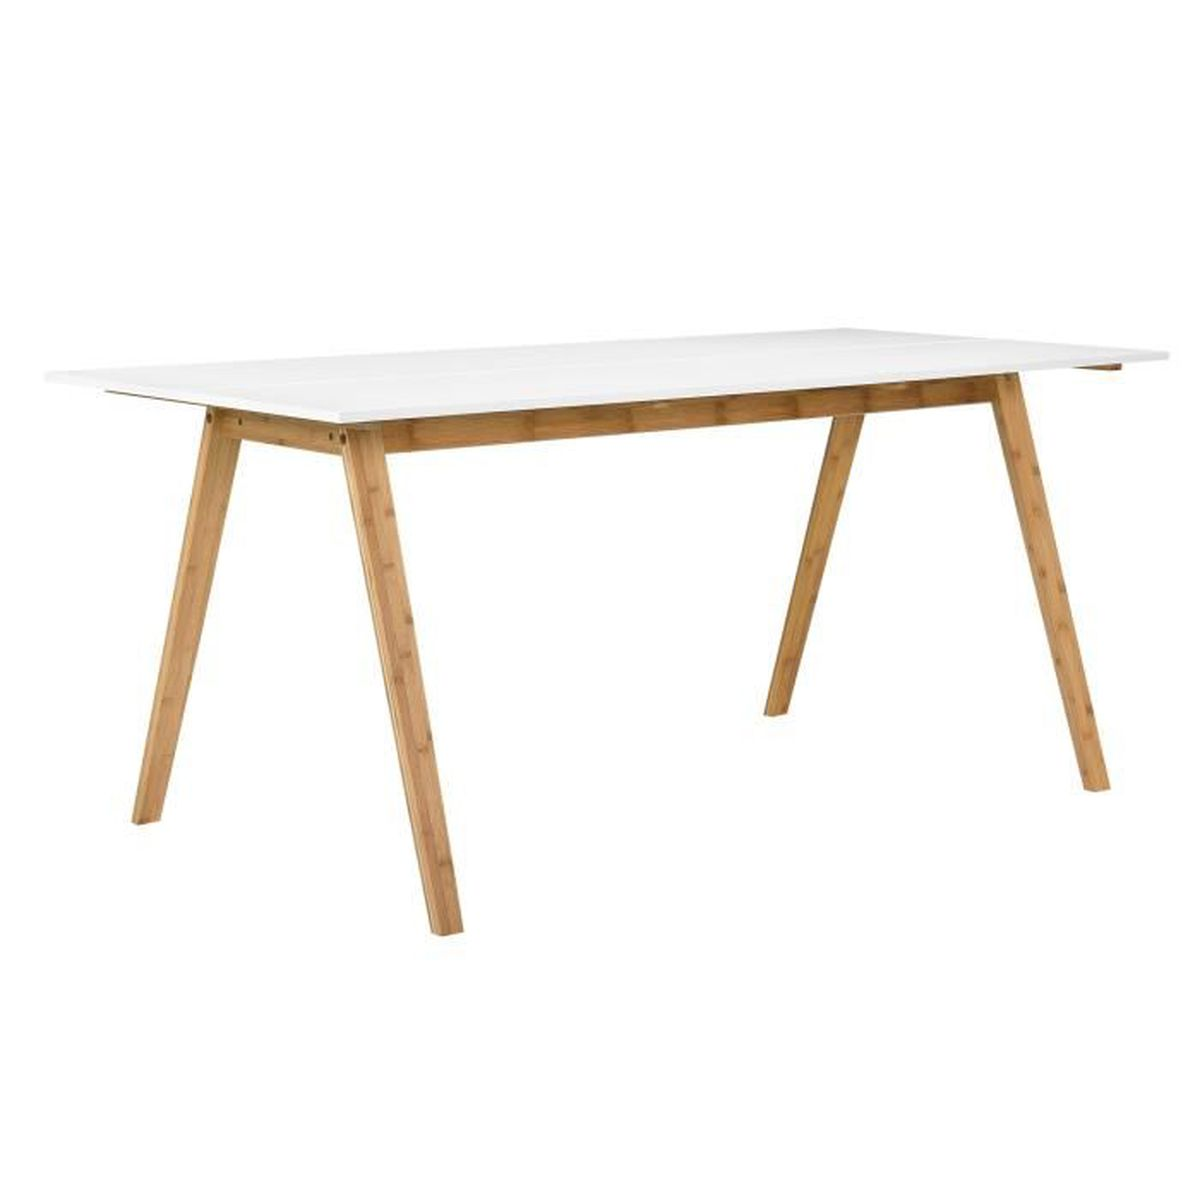 Table de bambou blanc laqu 180x80cm salle for Model de table a manger en bois